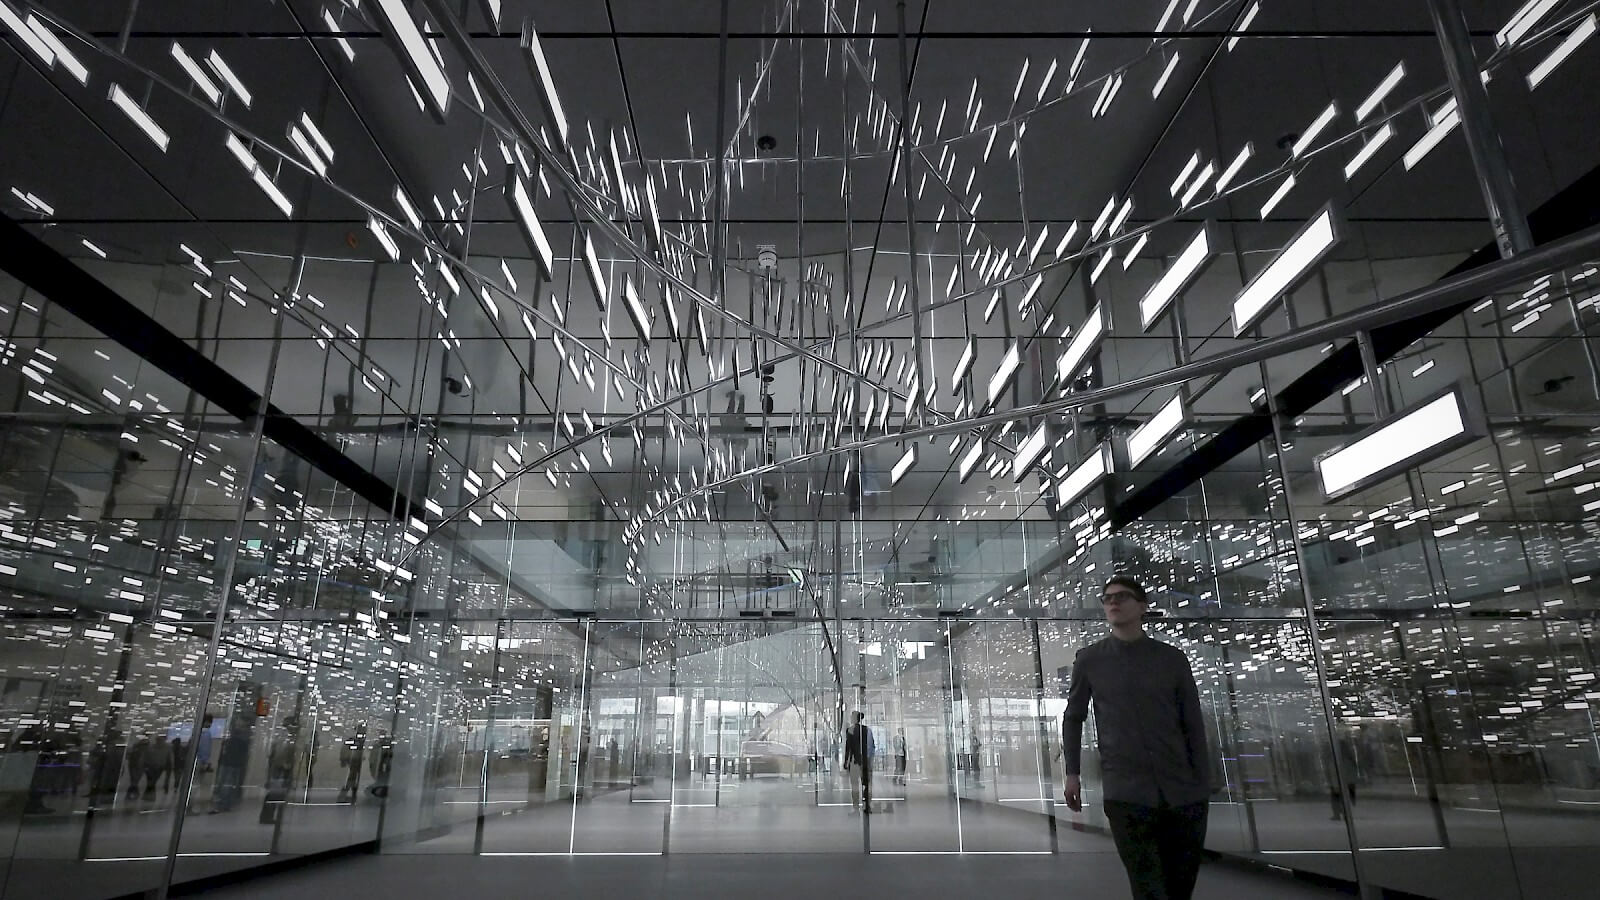 Man goes through the room with OLED lighting installation Light Cloud